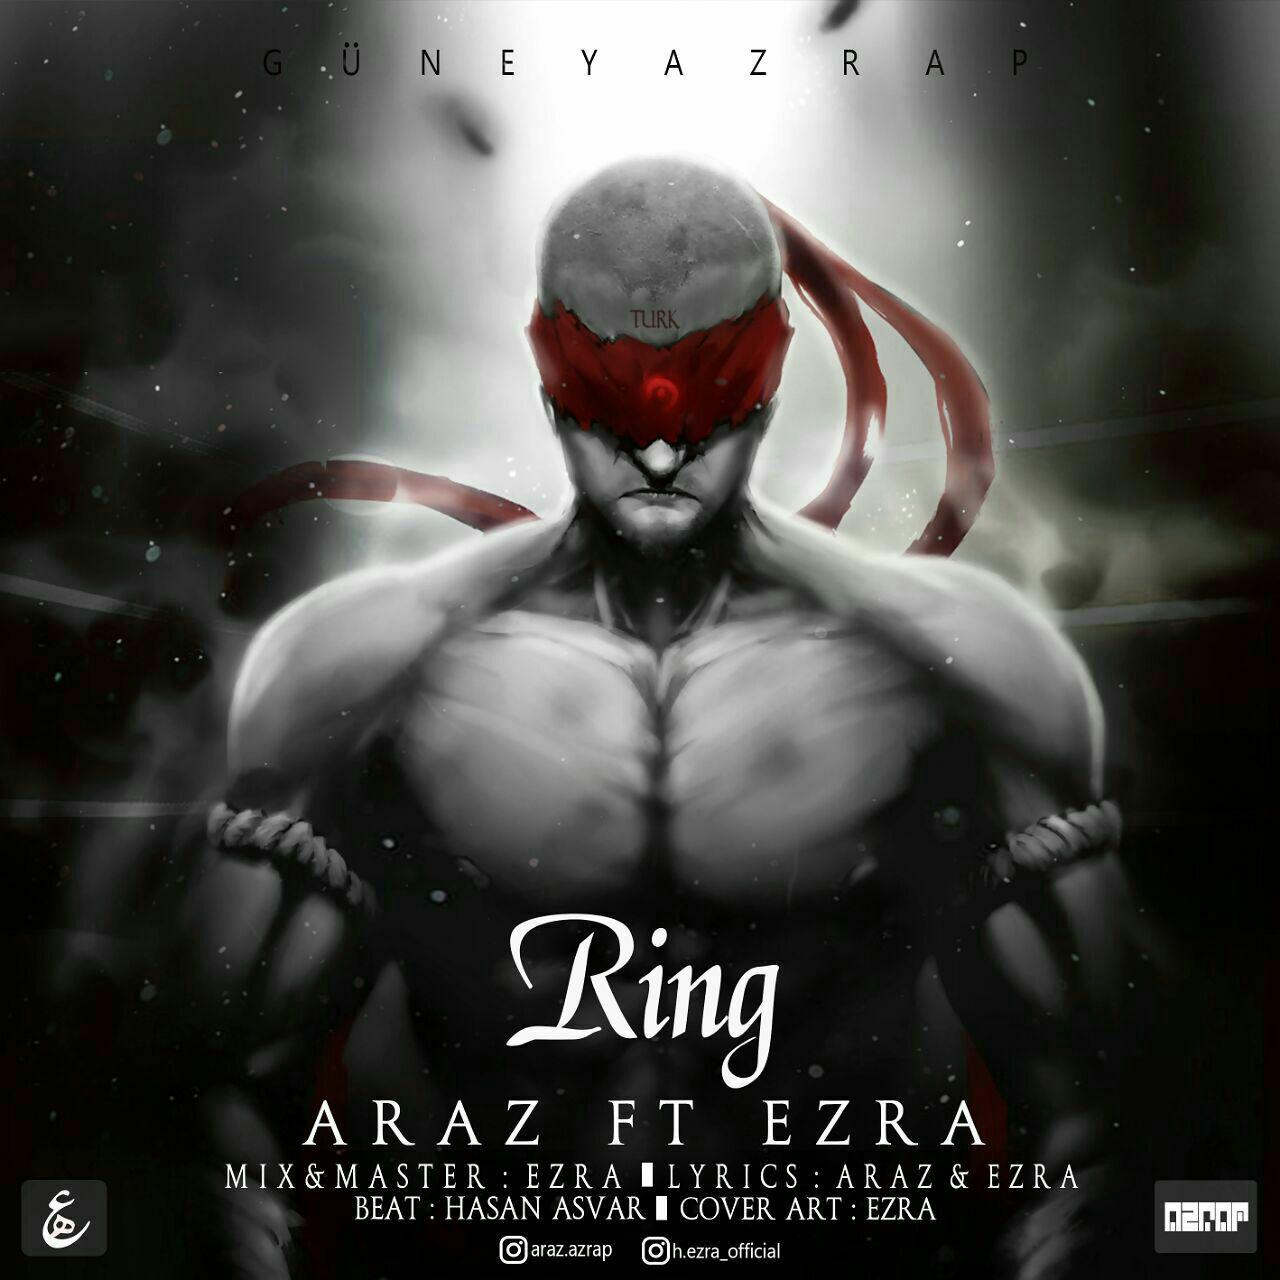 http://s8.picofile.com/file/8311565484/12Araz_Ft_Ezra_Ring.jpg